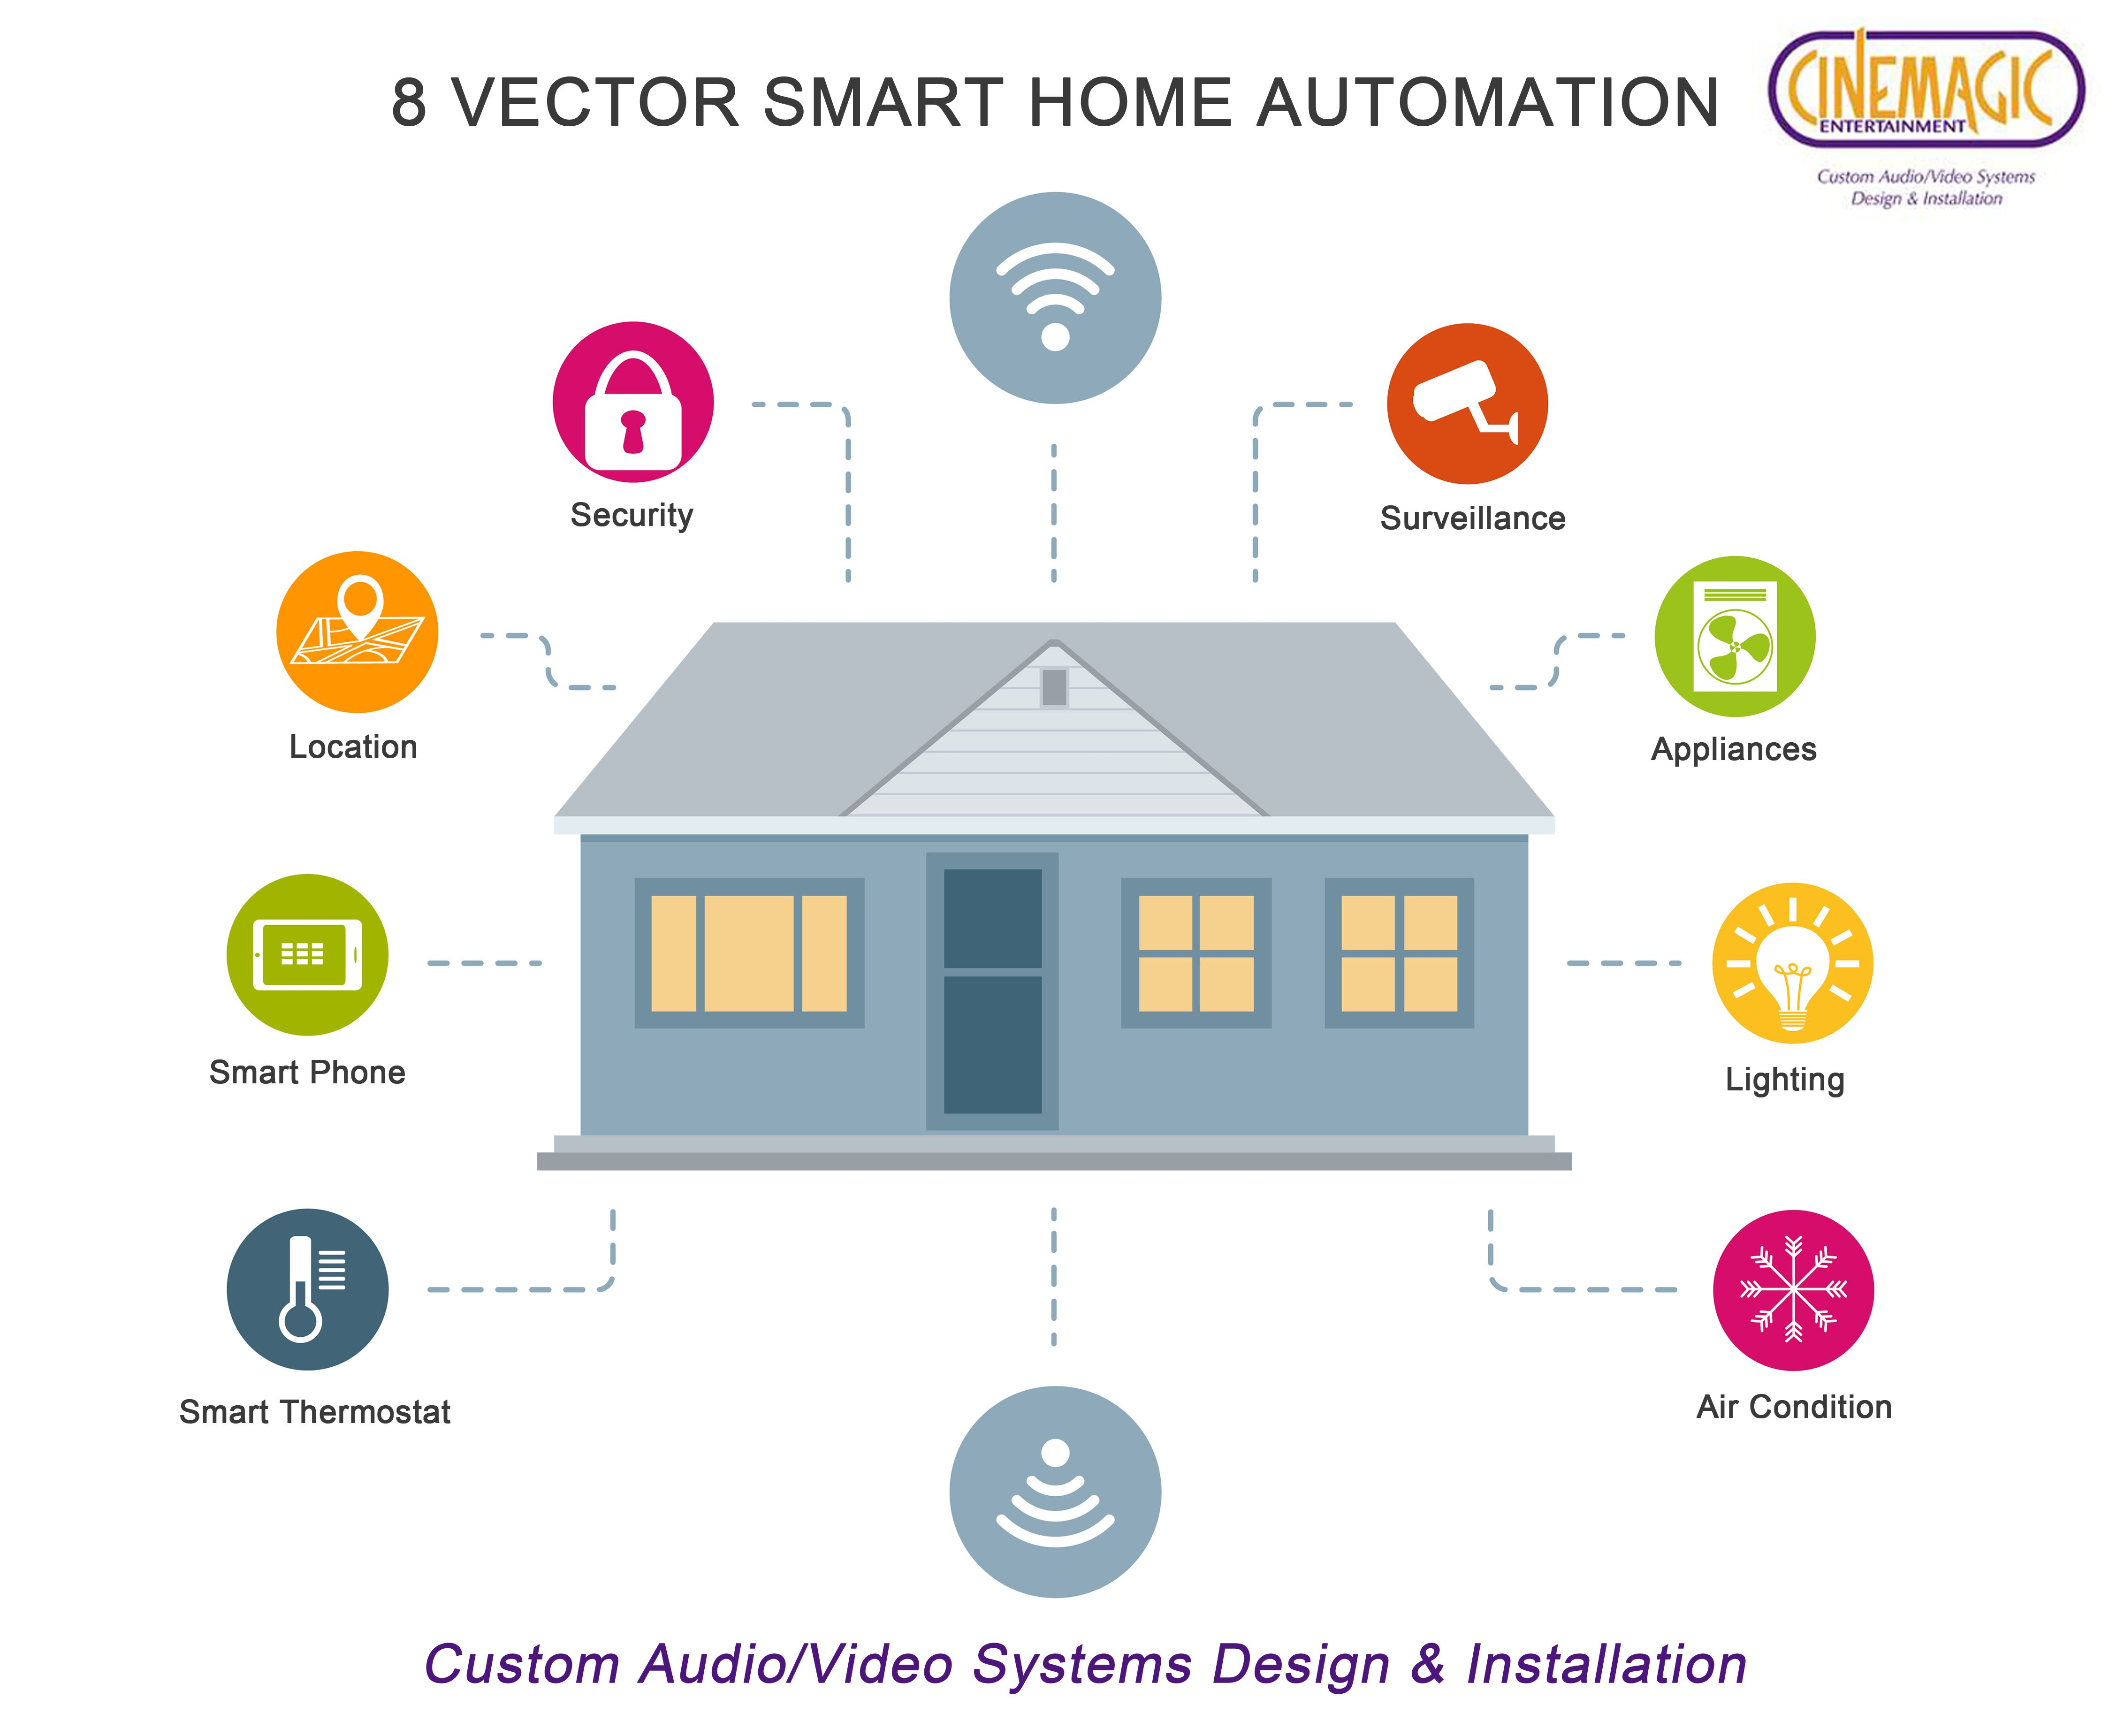 8 Vectors of Smart #HomeAutomation Service in #NewJersey. For Custom ...